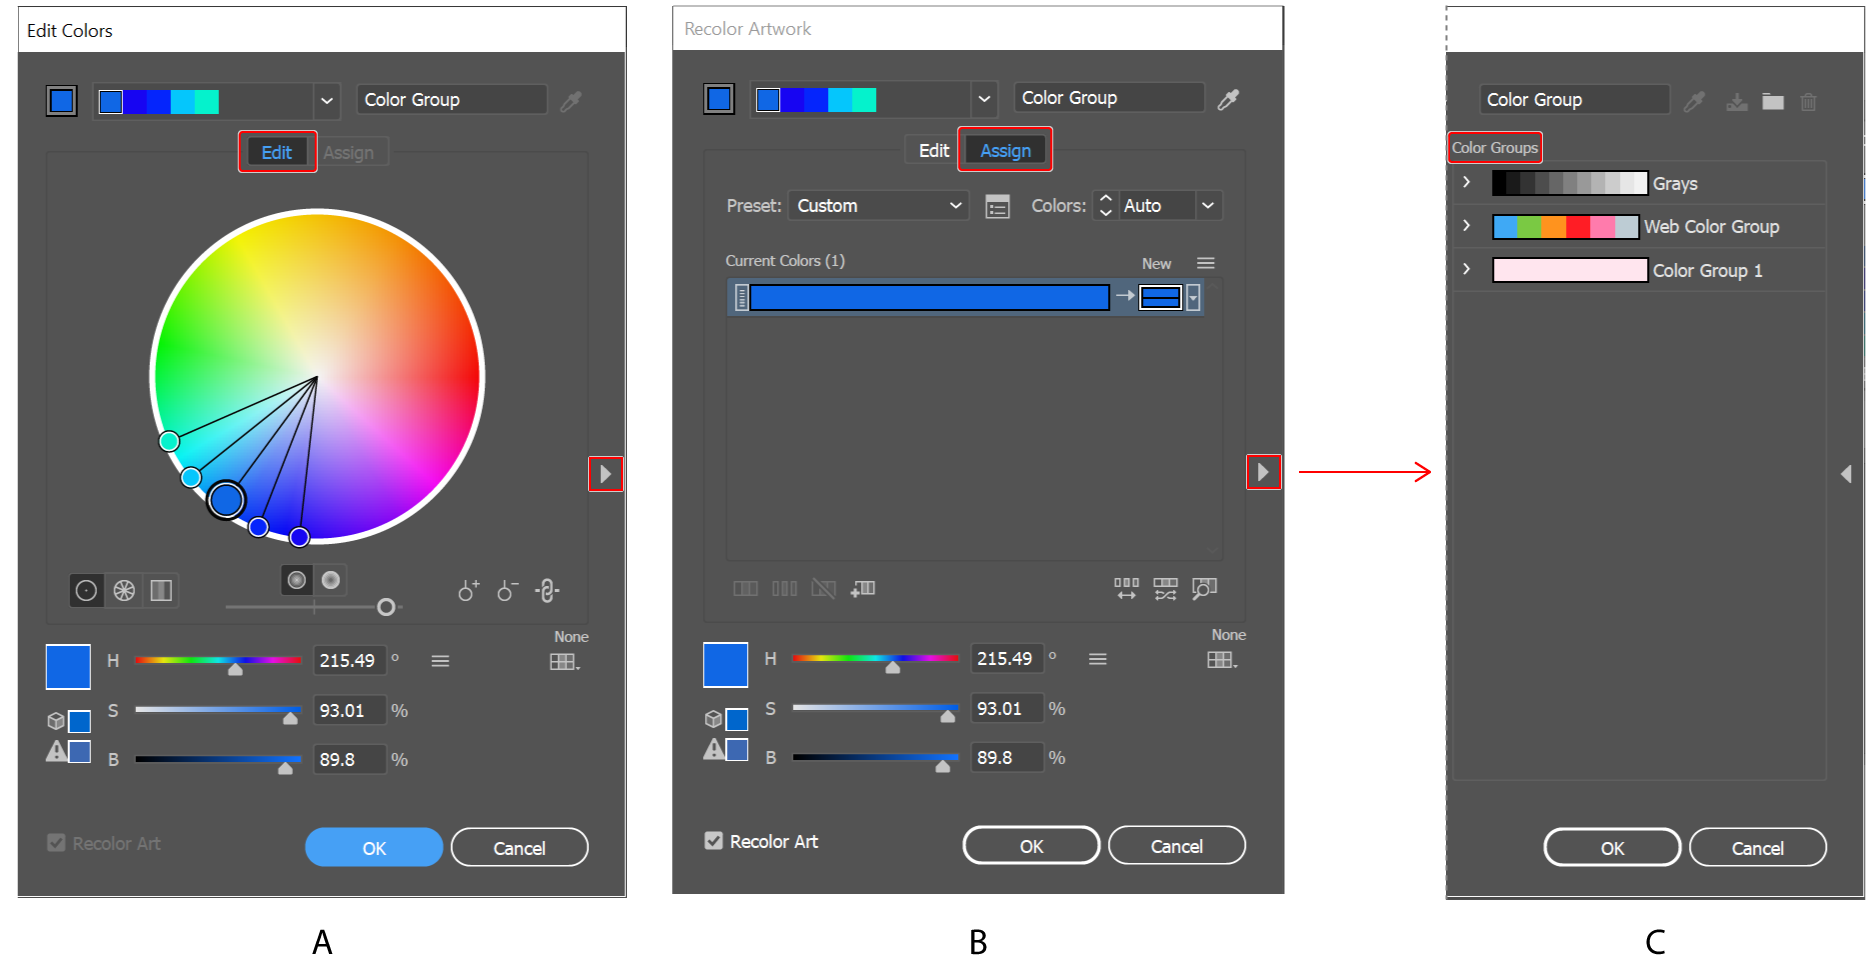 Create or edit color groups, and assign colors using the Edit Colors/Recolor Artwork dialog box.